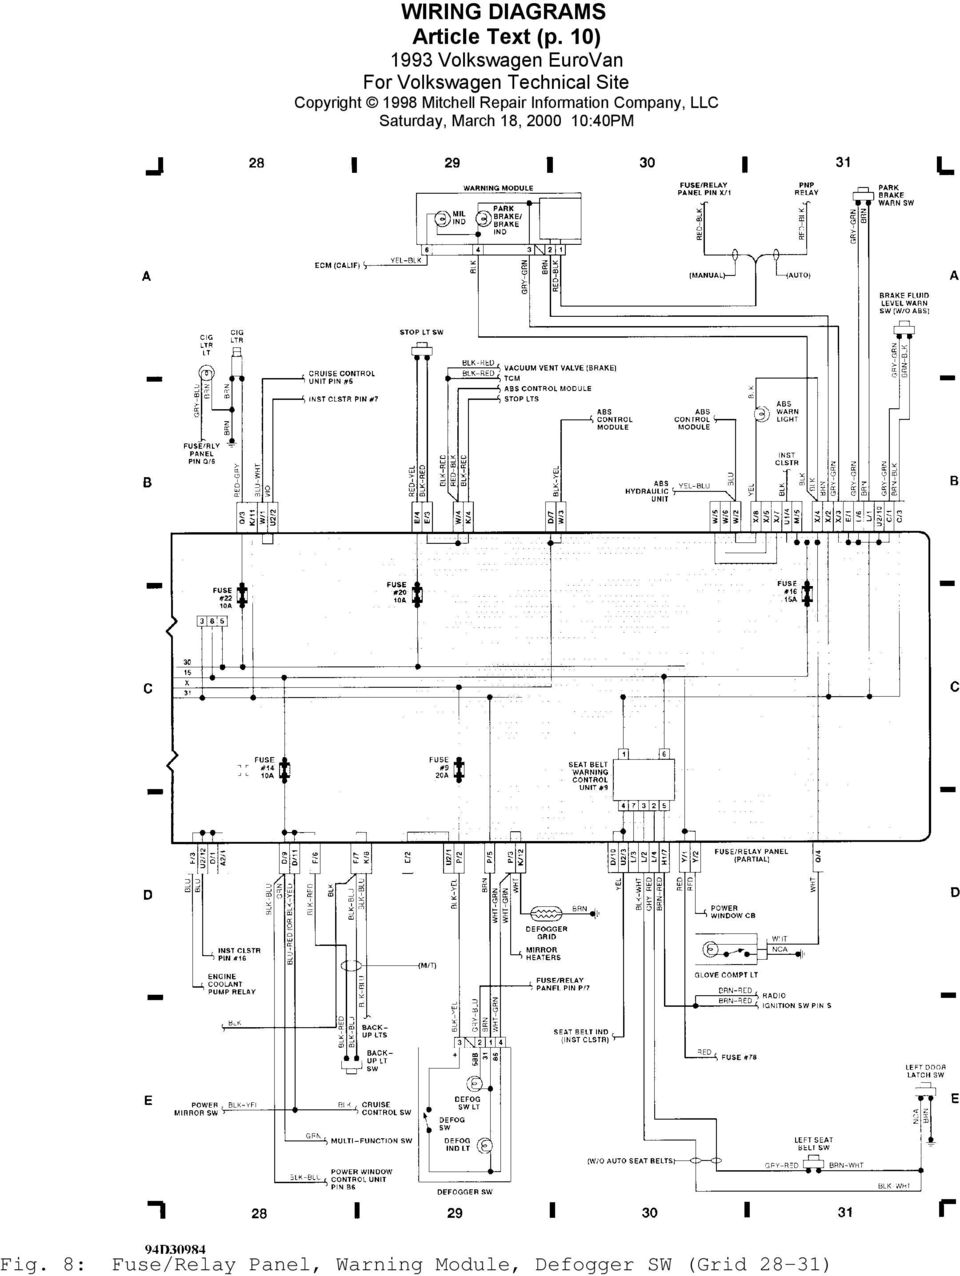 RB_9466] Vw Auxiliary Water Pump Wiring Diagram Download DiagramPhot Throp Inki Arivo Lotap Pical Leona Icism Mecad Lious Verr Meric Scoba  Mohammedshrine Librar Wiring 101